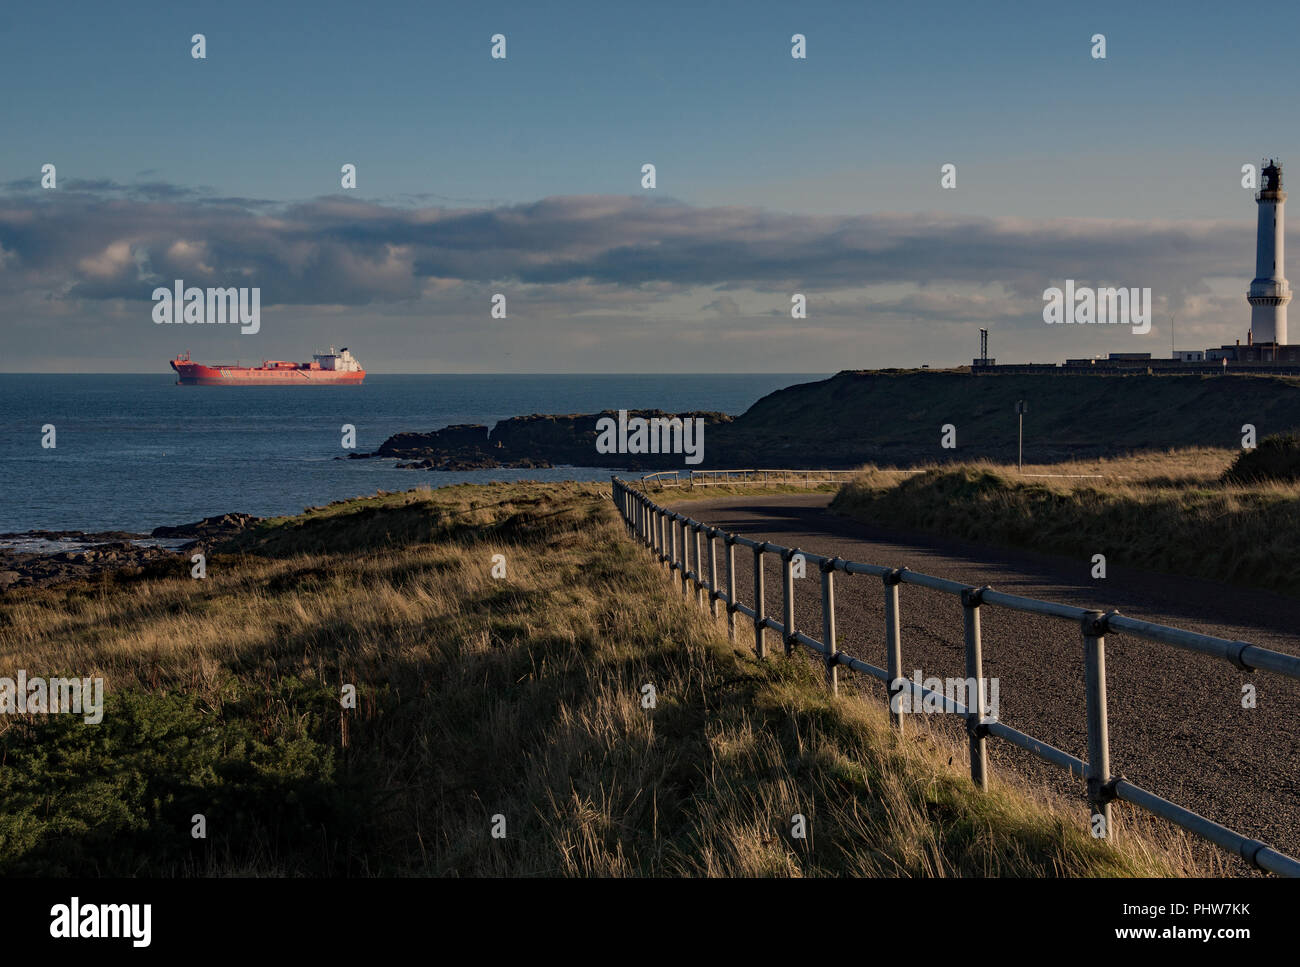 A Stena Teekay ship anchored at the entrance to Aberdeen harbour in Scotland, with the Girdle Ness lighthouse keeping watch. - Stock Image